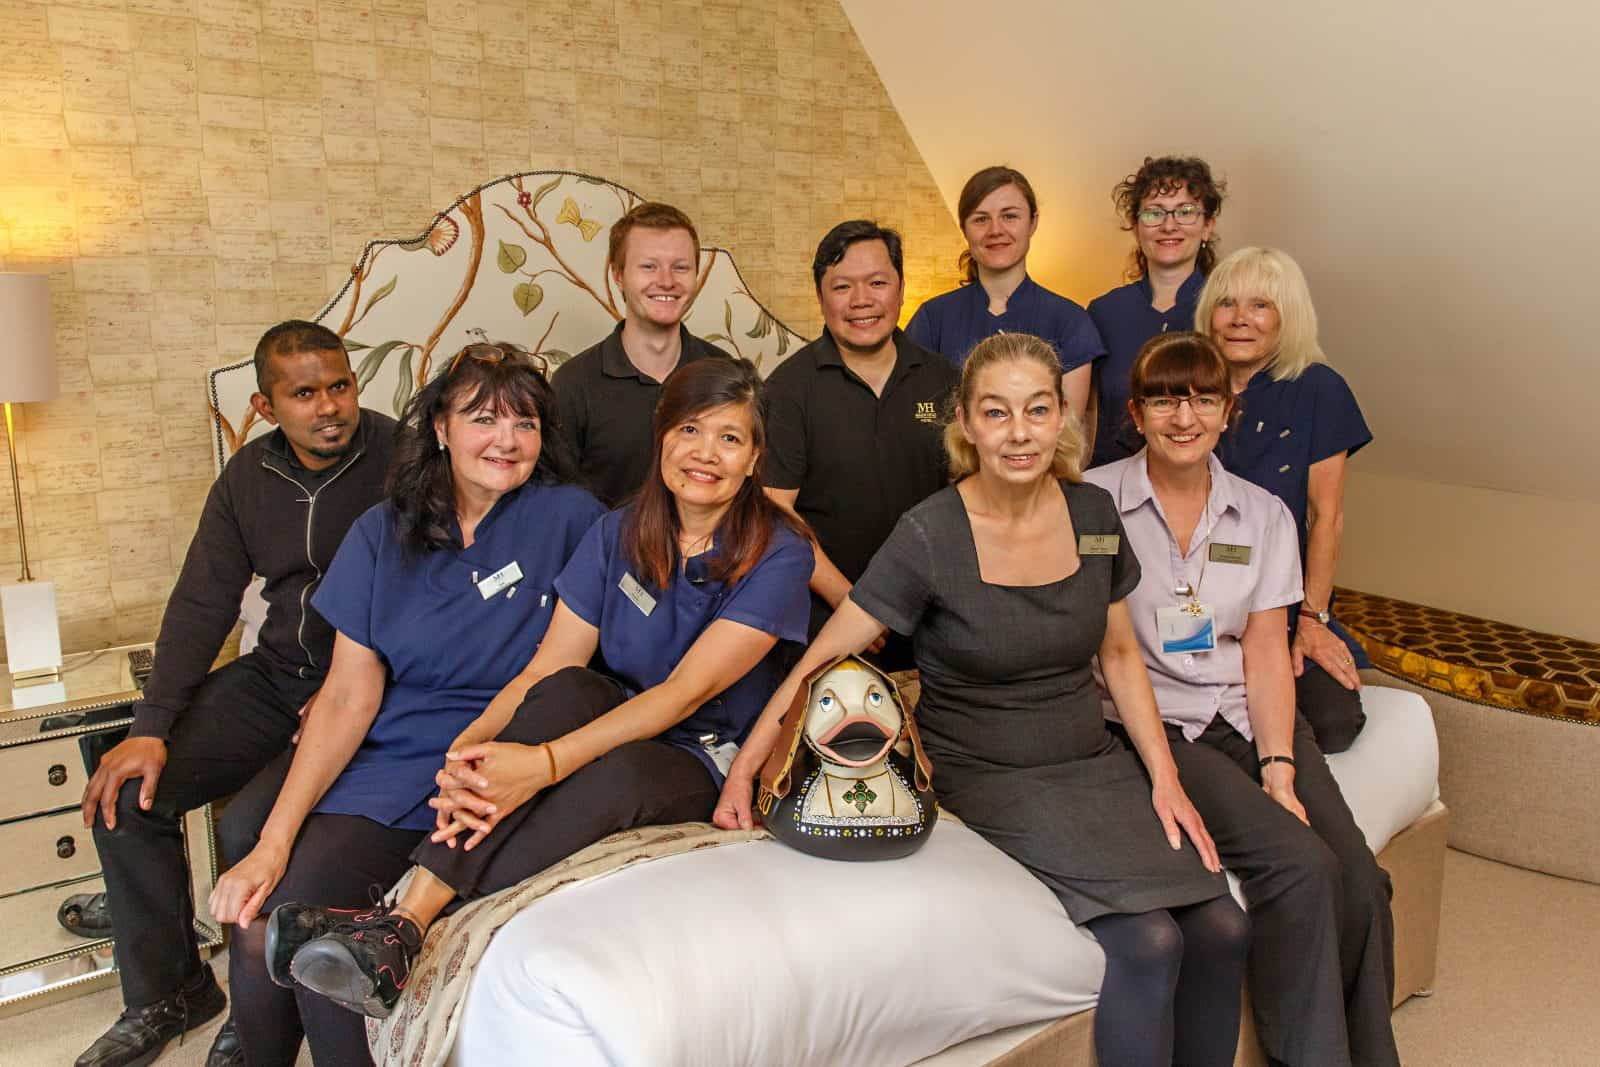 Our house keeping team, proud of our vision and values